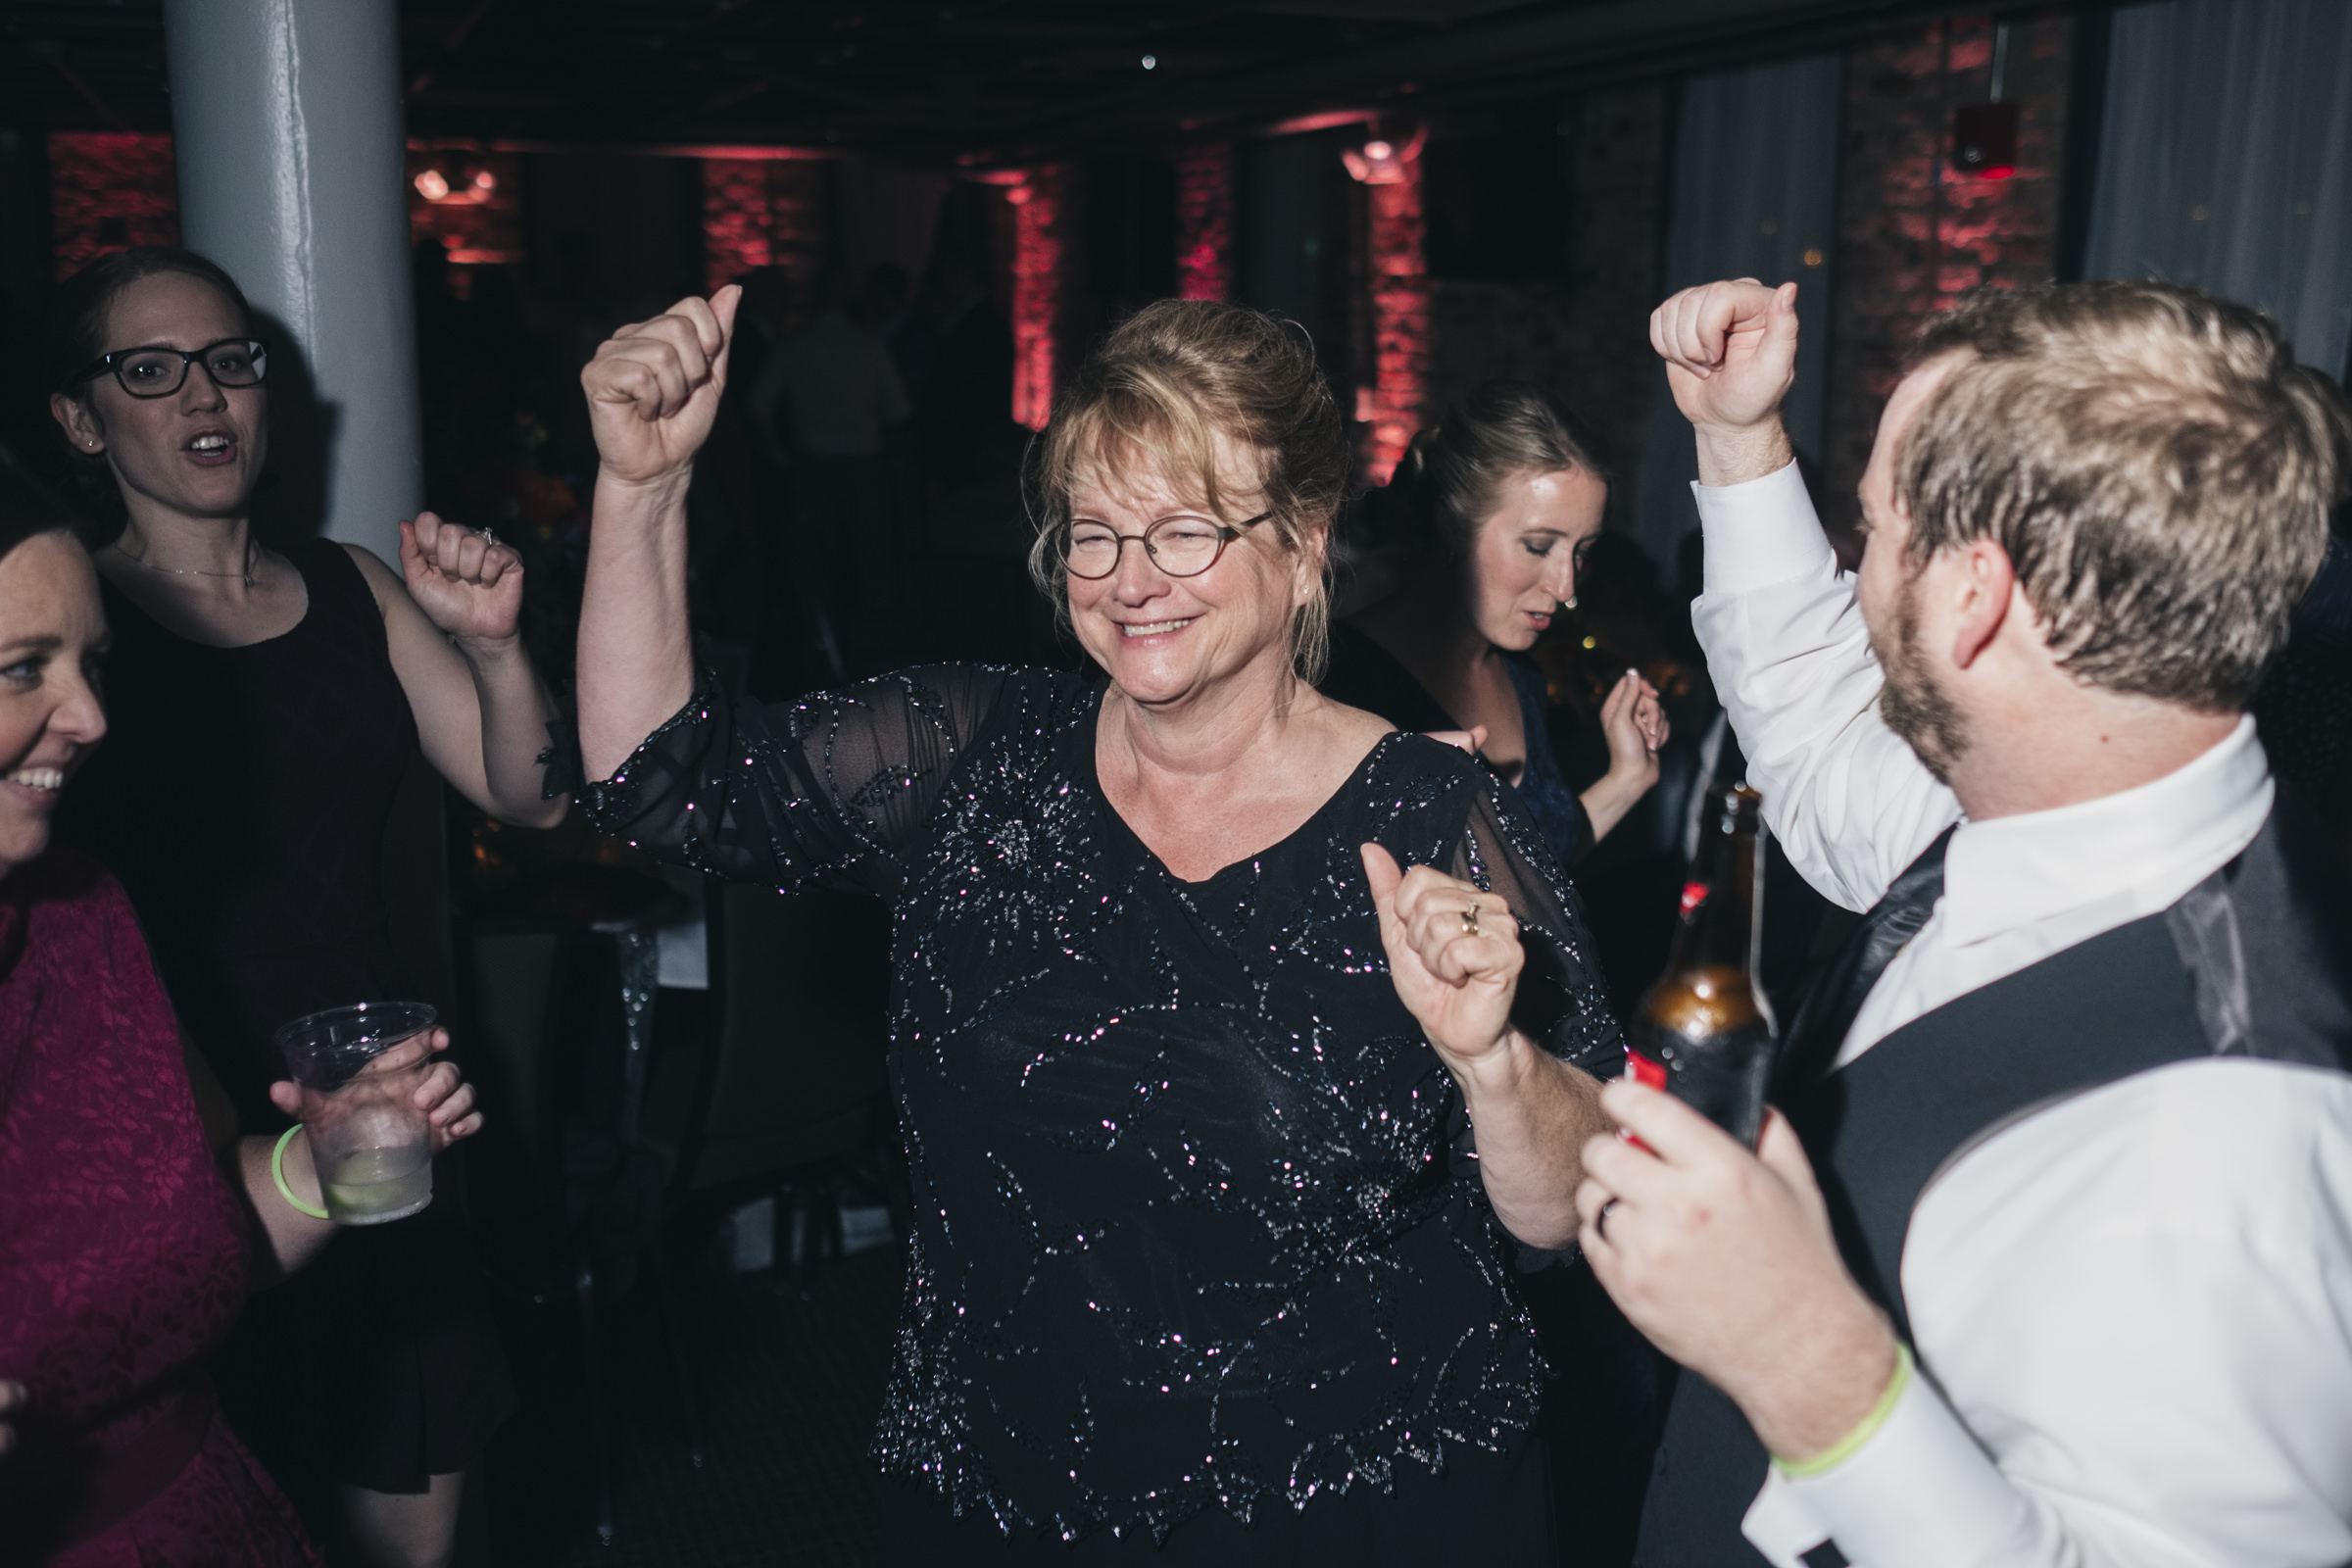 Mother of the bride dances at her son's wedding reception.